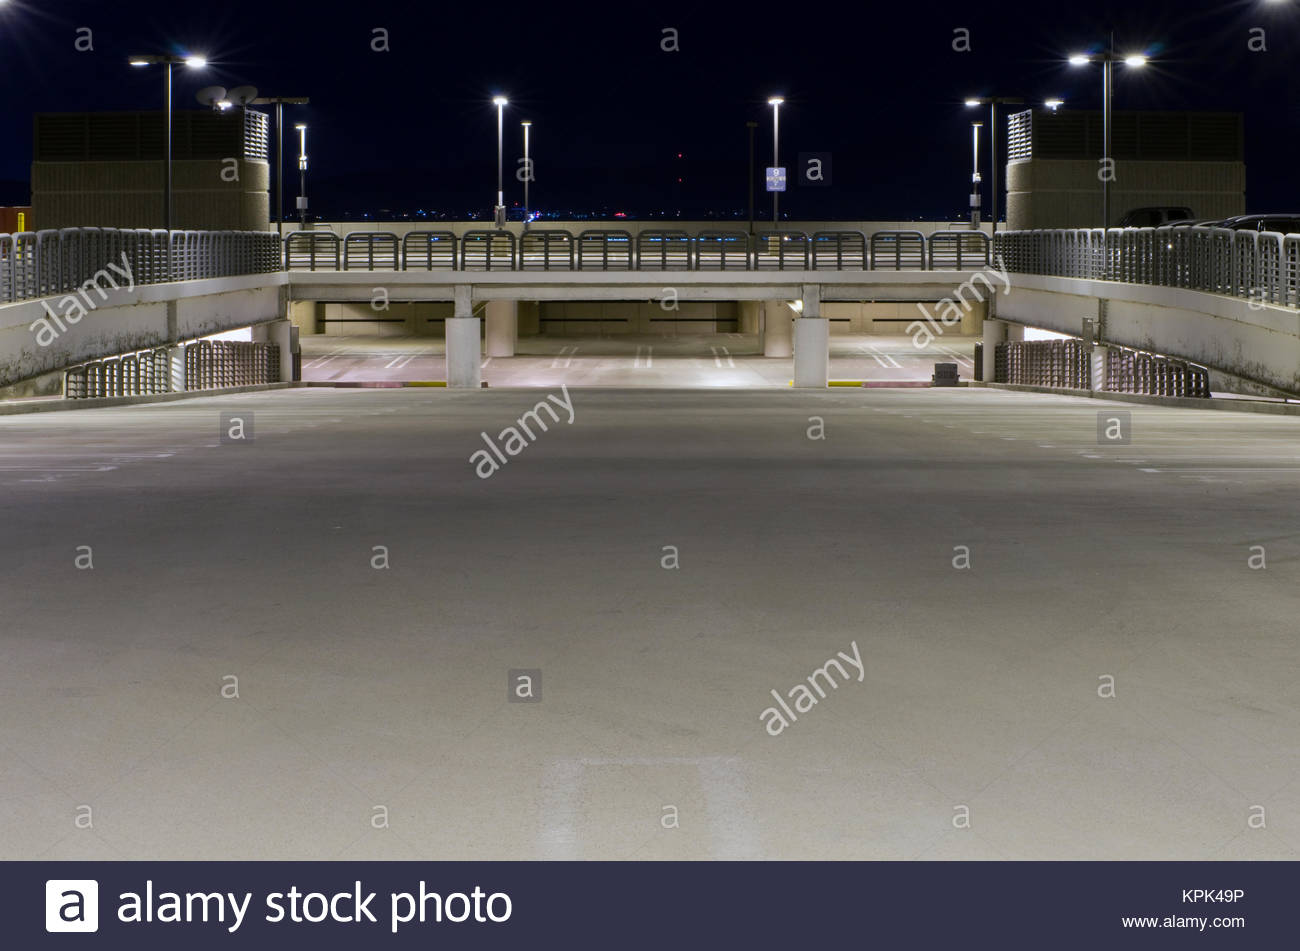 A Nighttime View Of An Empty Parking Garage At Sky Harbor Airport In